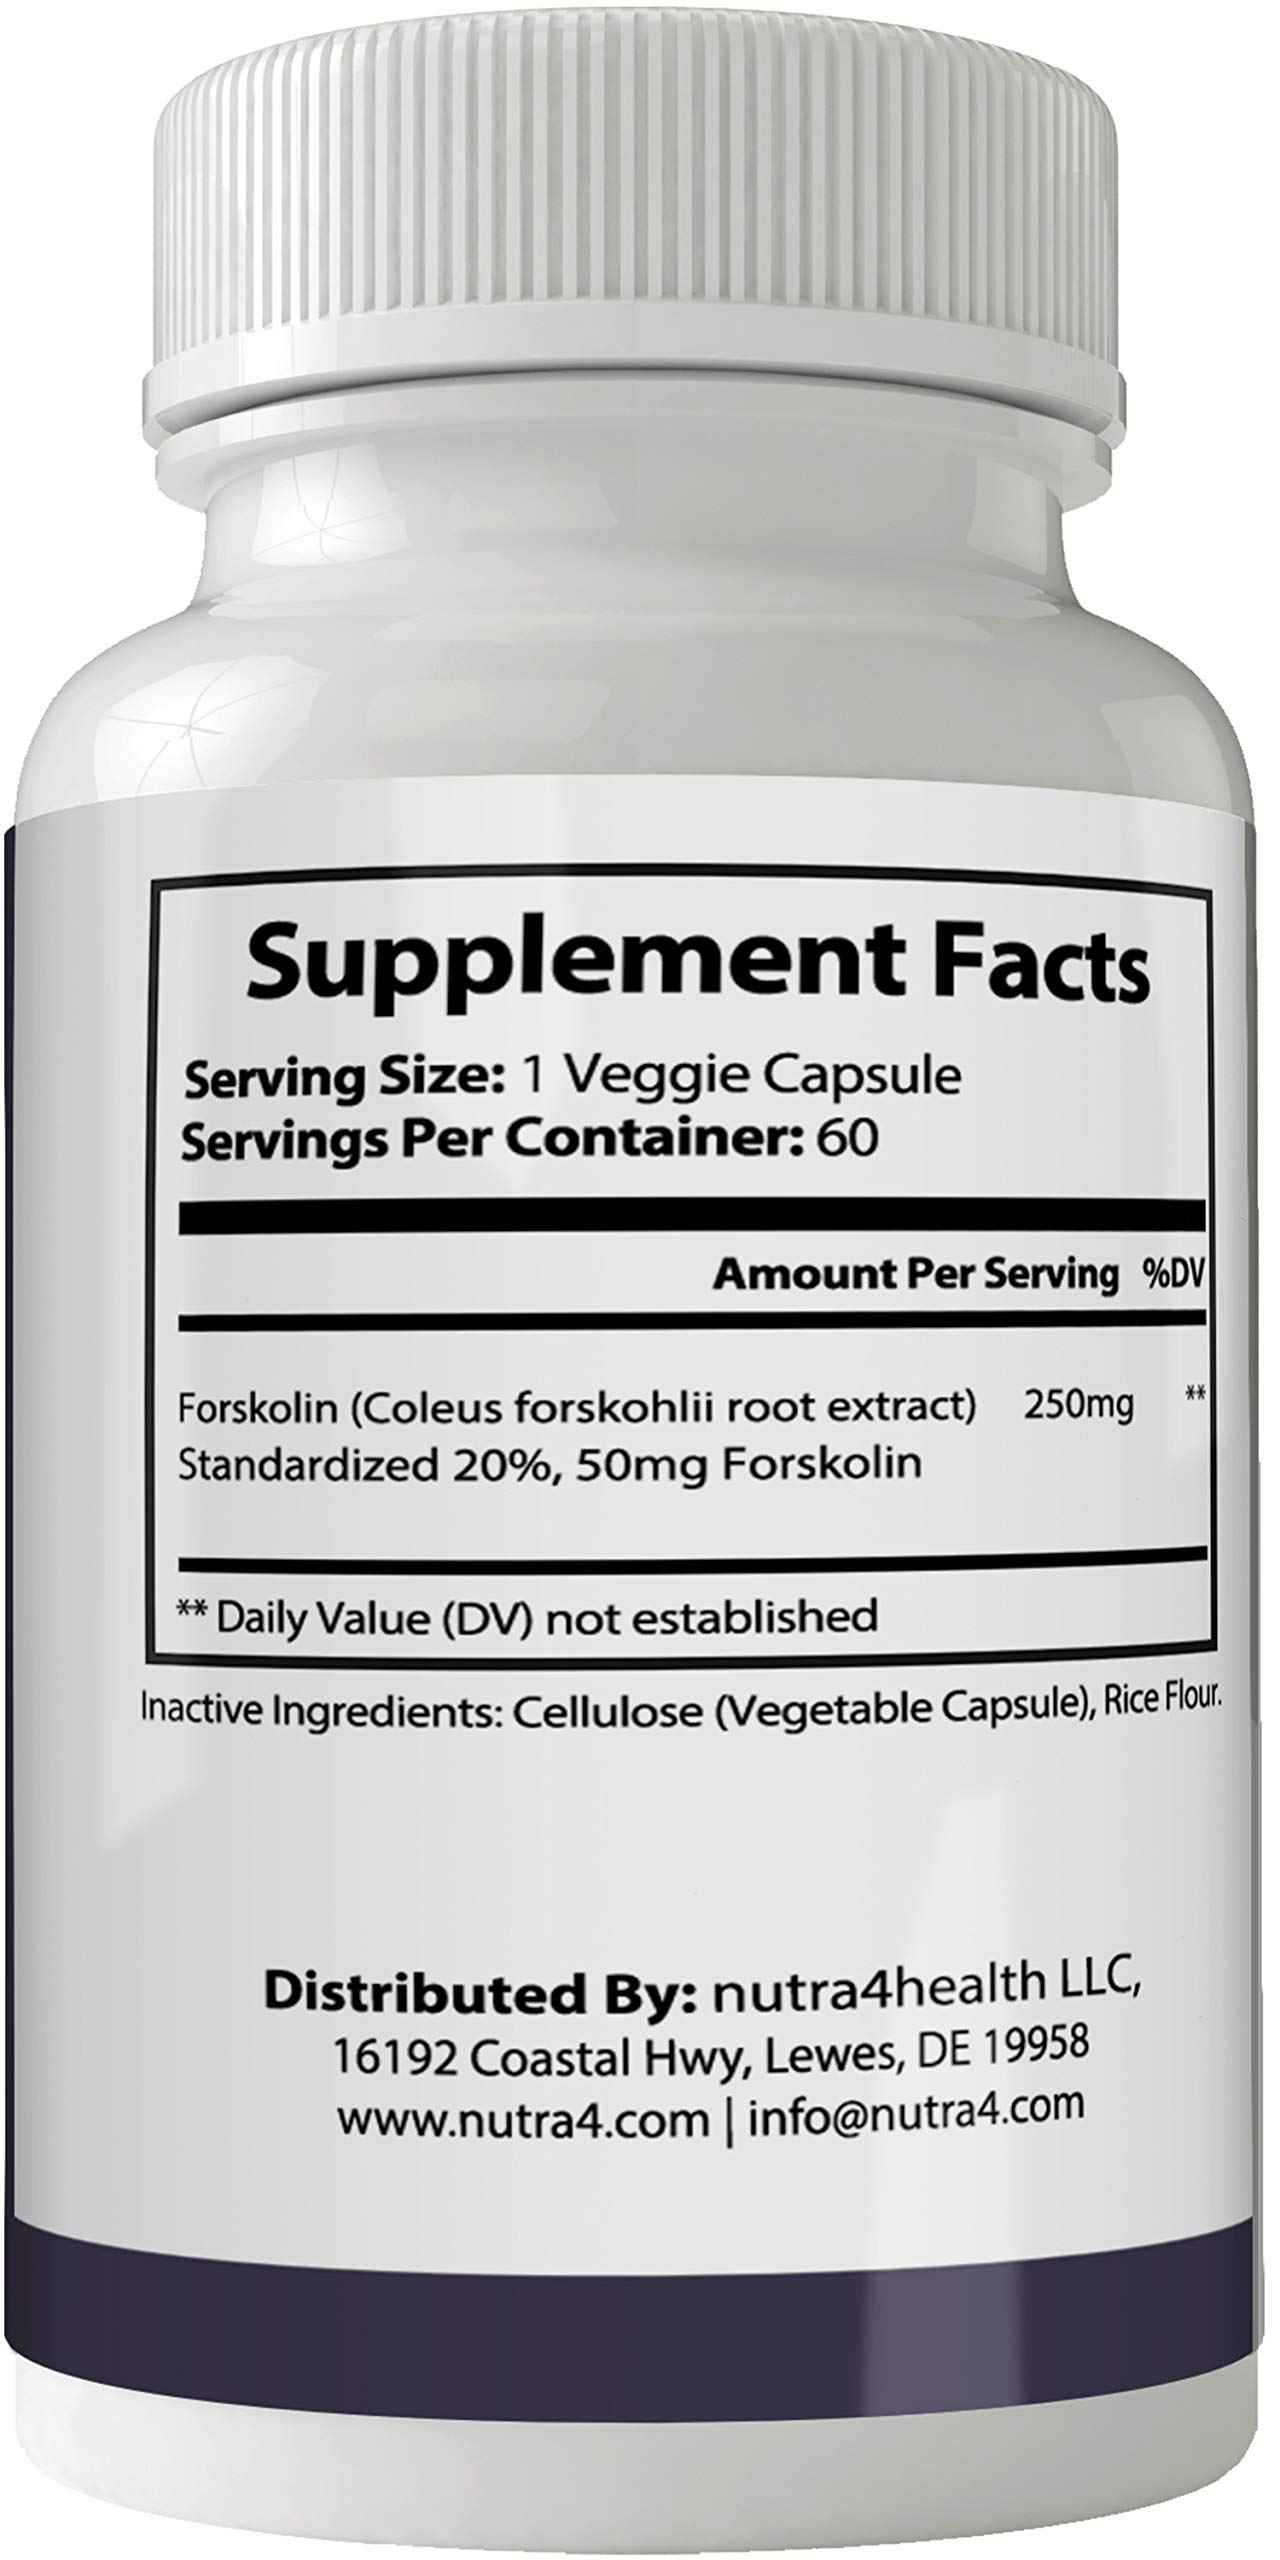 Keto Rapid Max Forskolin for Weight Loss Supplement Pills Ultra Formula with 250mg High Quality Natural Forskolii Extract Appetite Suppressant Tablets Boost Metabolism by nutra4health LLC (Image #2)